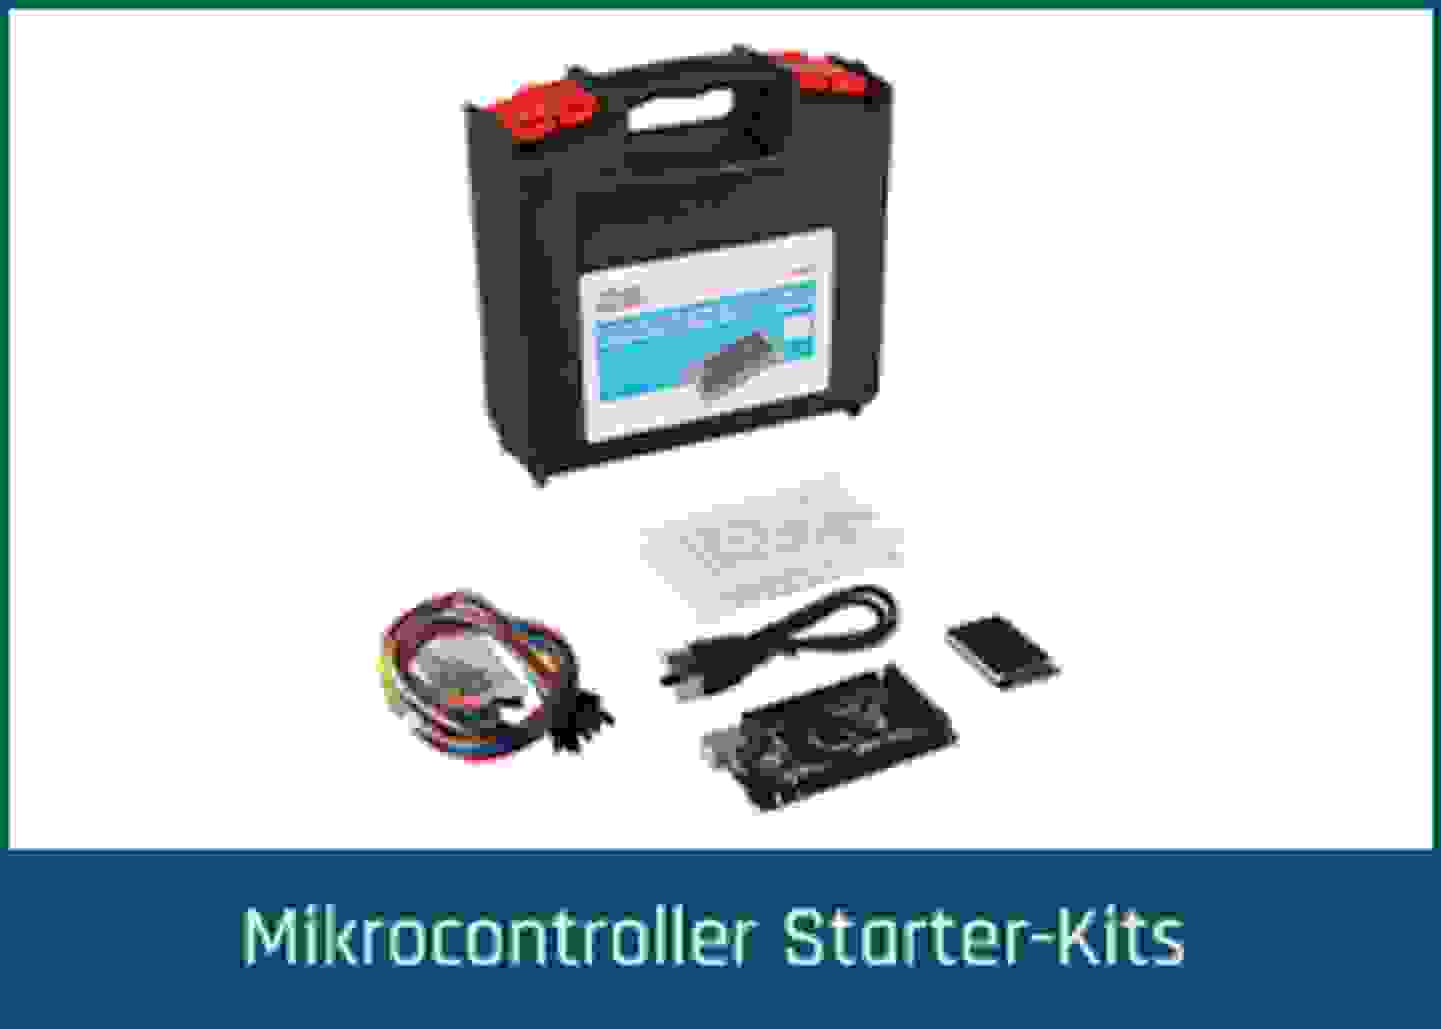 MAKERFACTORY Mikrocontroller Starter-Kits